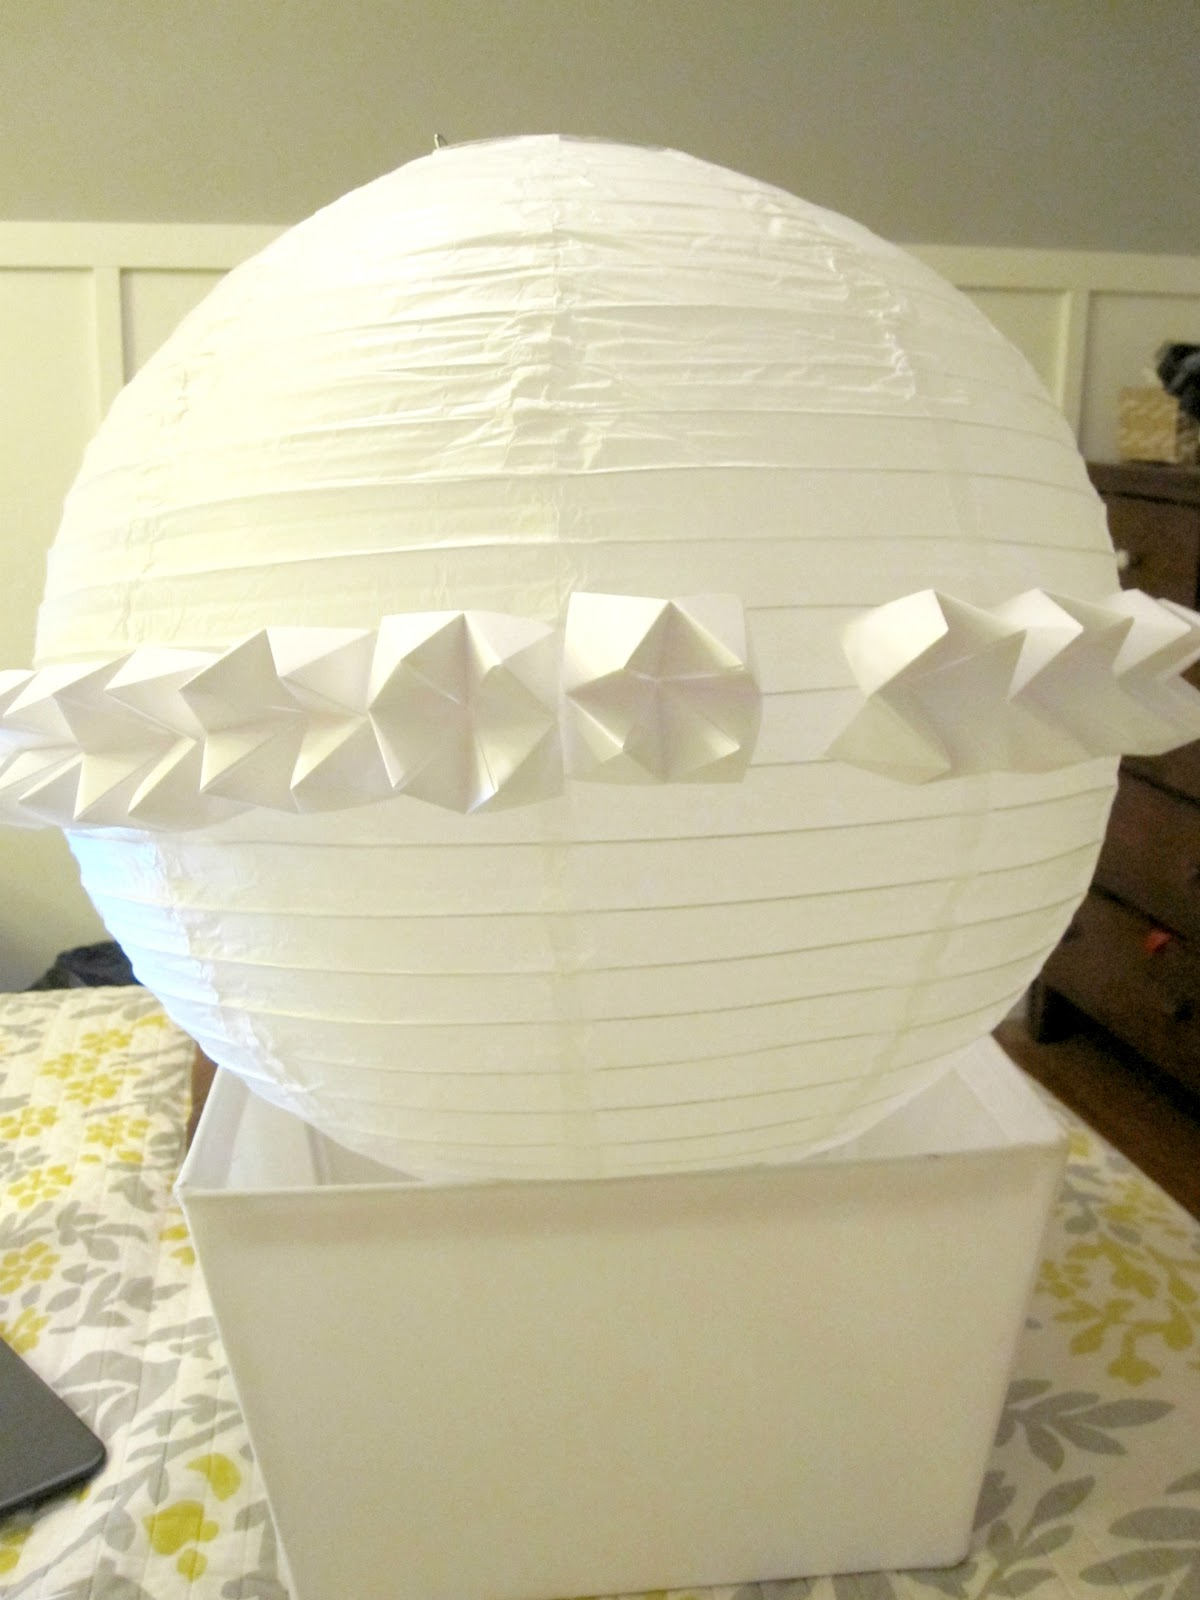 Beautifully contained: fortune teller paper lantern